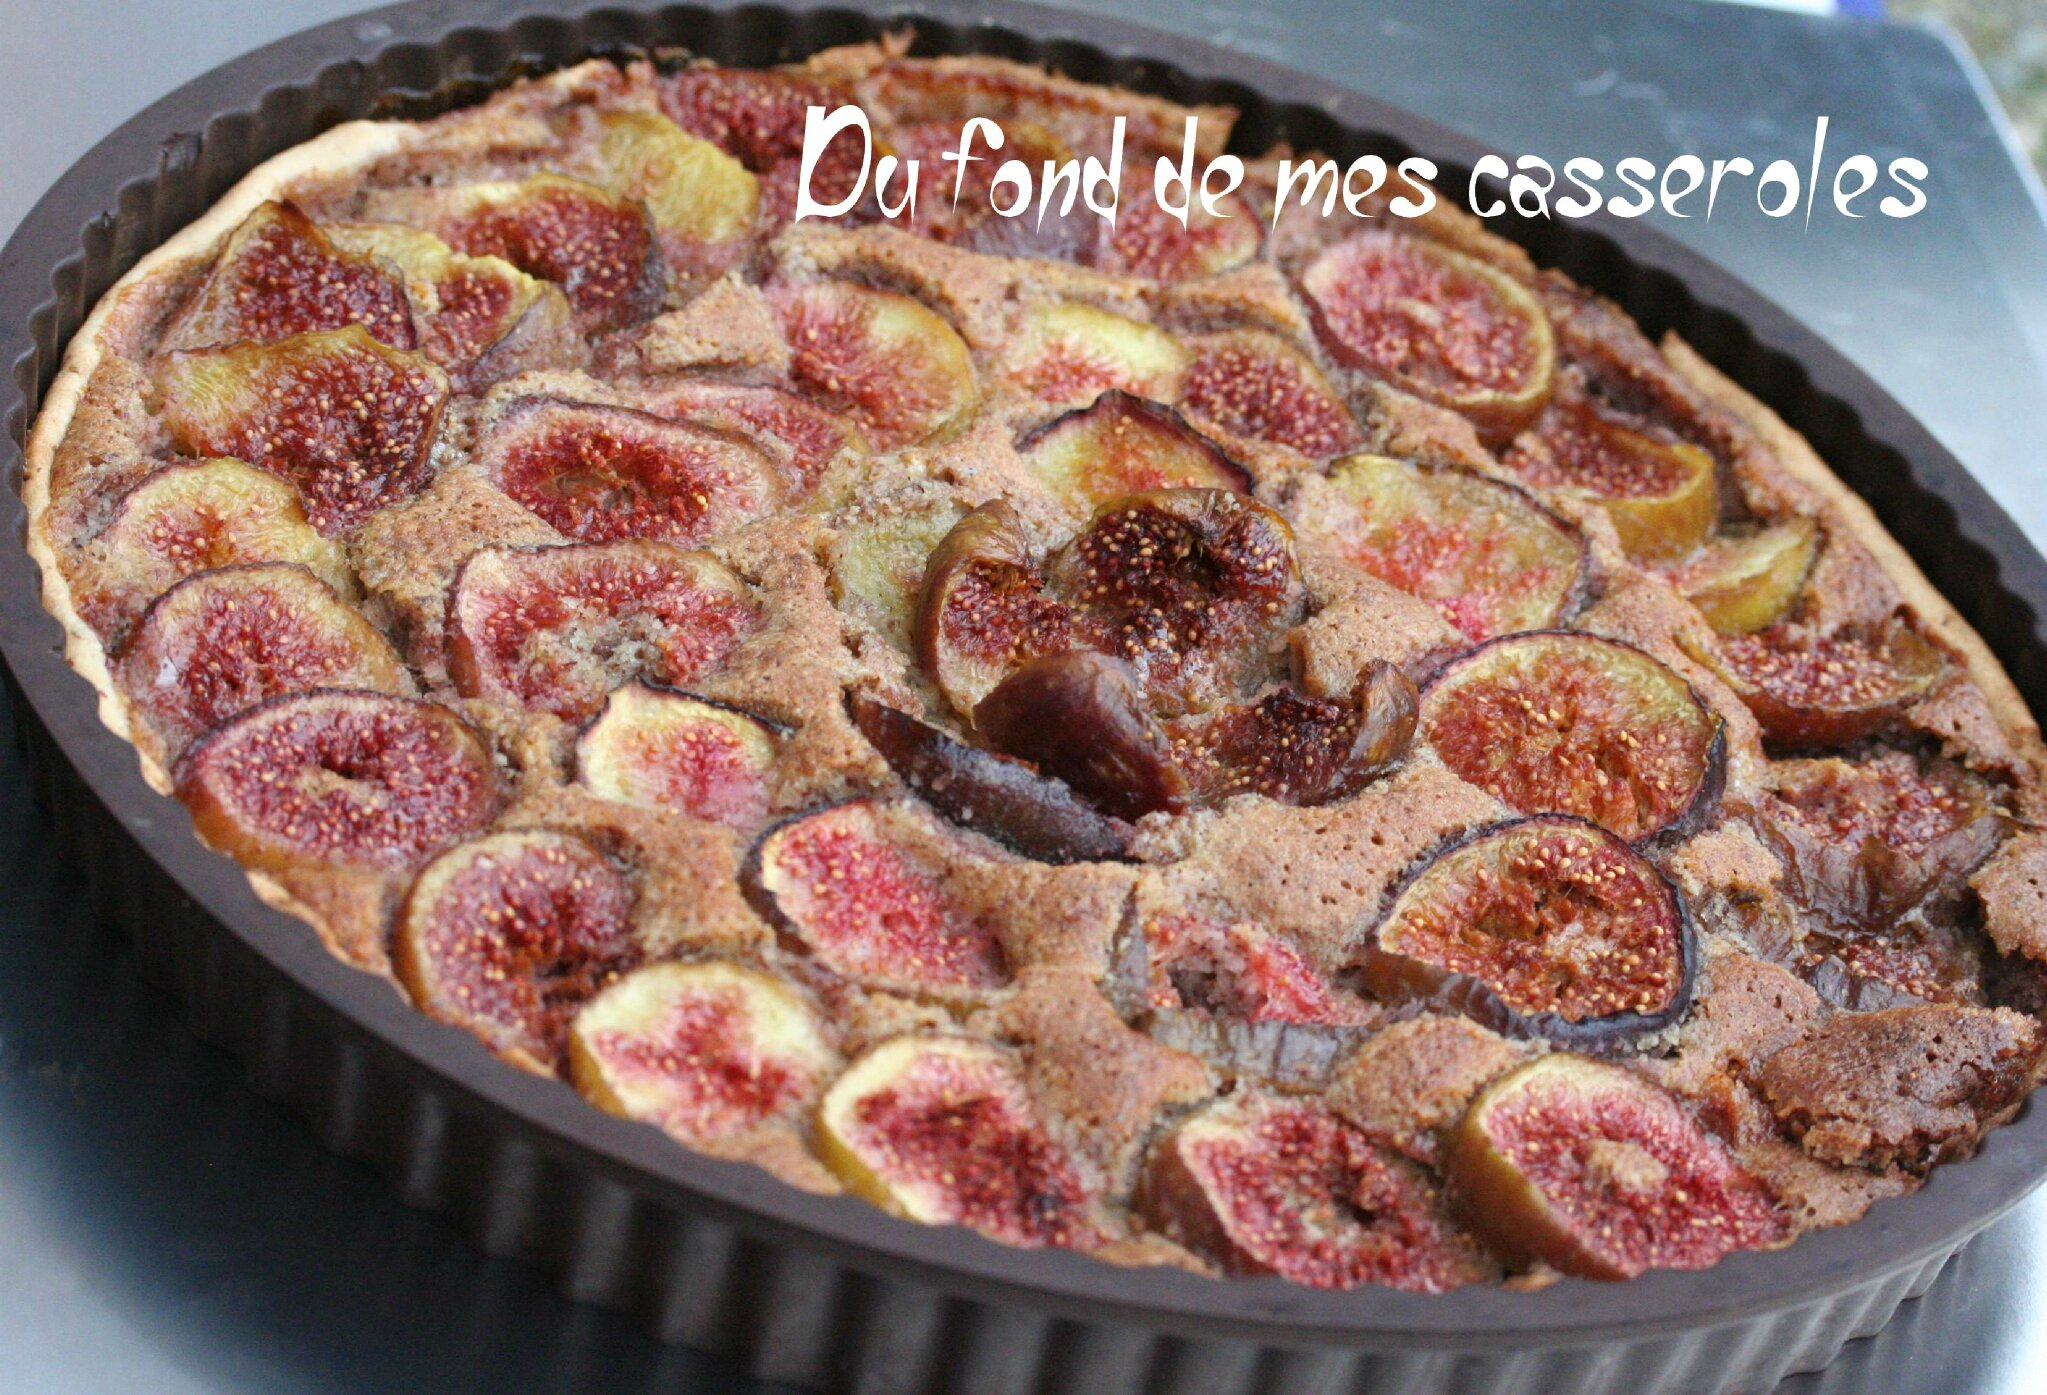 tarte aux figues amandes et eau de fleur d 39 oranger du fond de mes casseroles. Black Bedroom Furniture Sets. Home Design Ideas